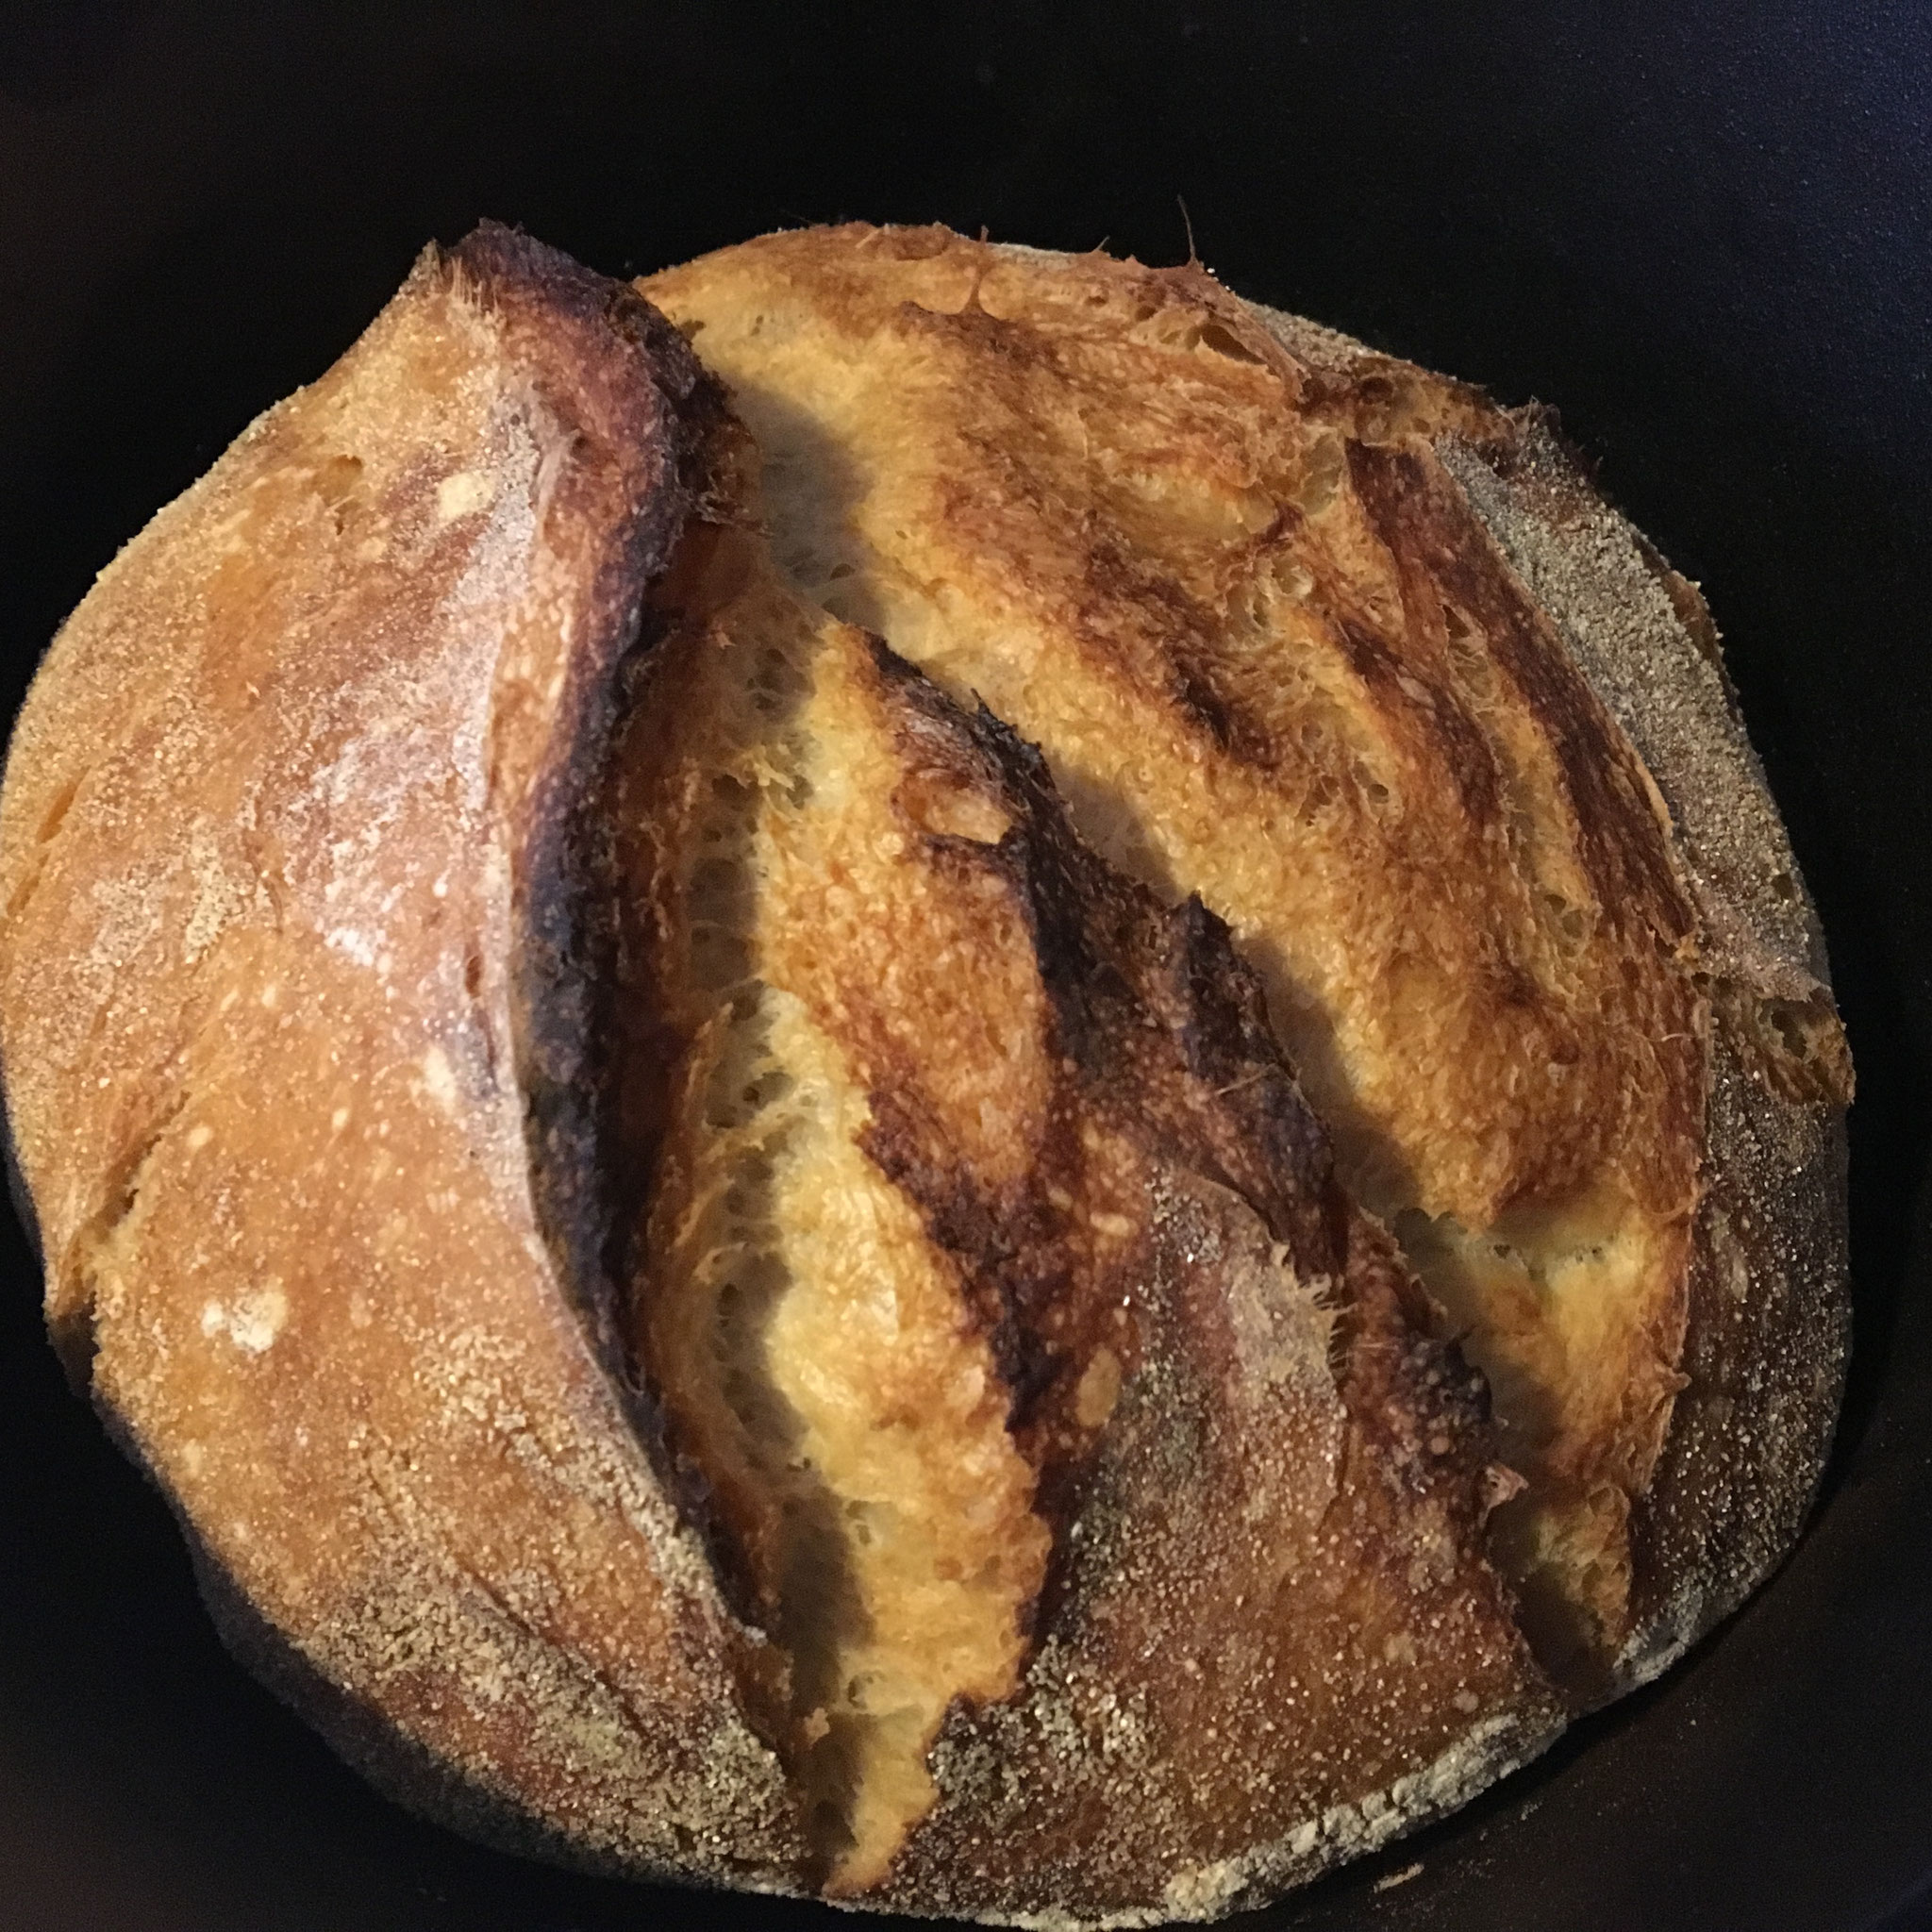 My first loaf of sourdough